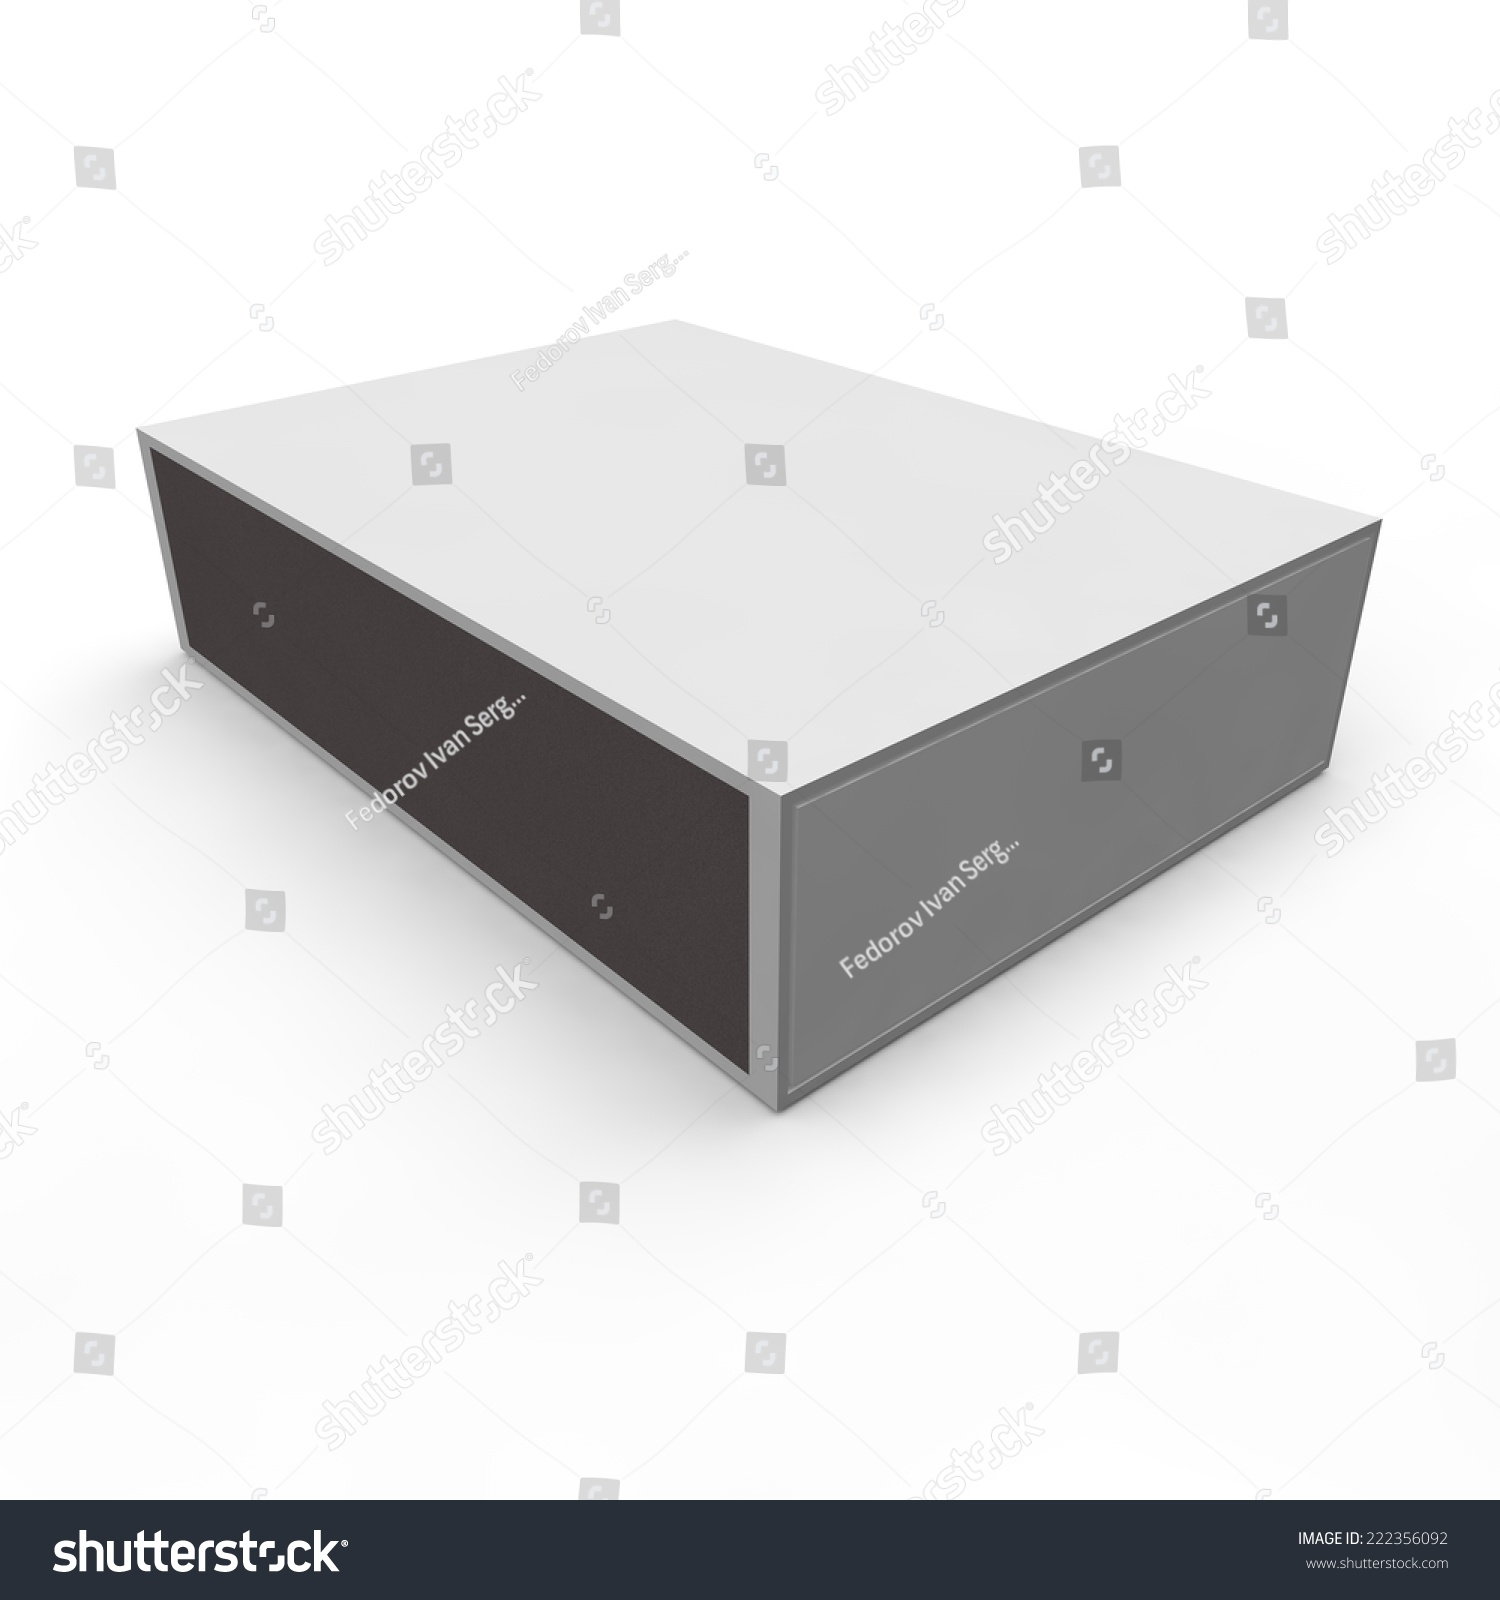 Template Empty Matchbox Isolated White Background Stock Illustration ...